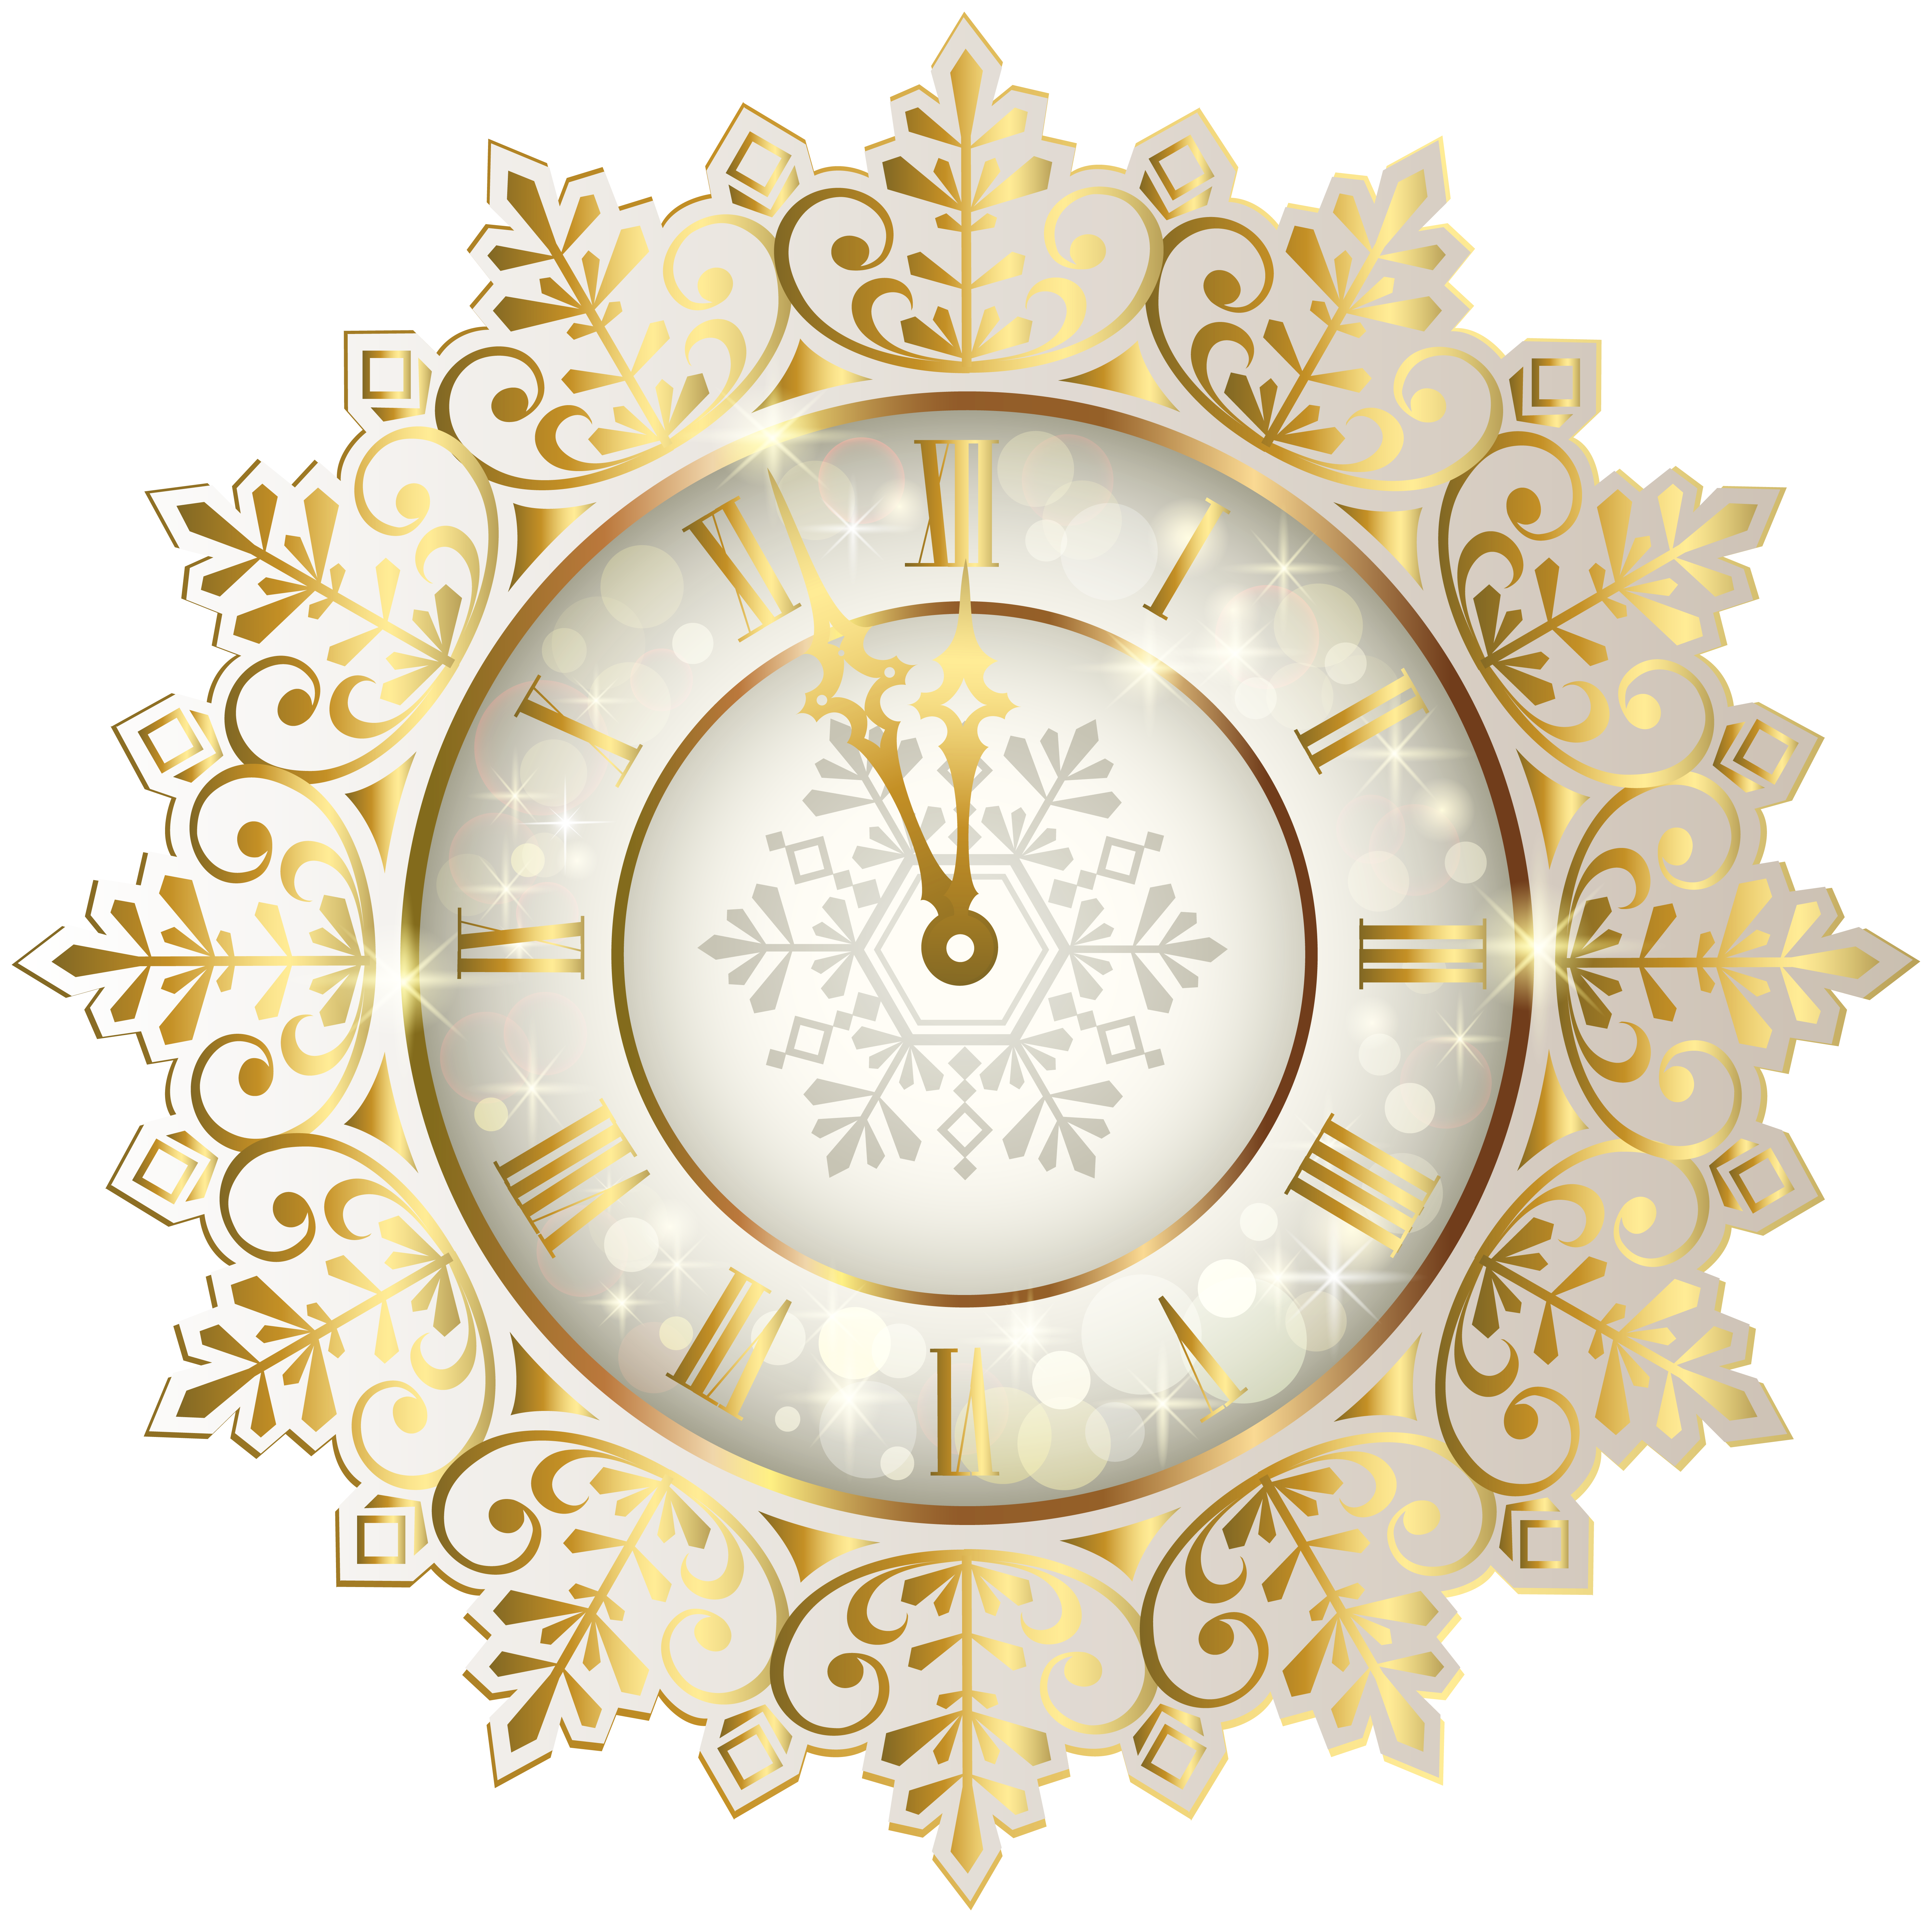 Gold New Year Clock PNG Clipart Image.